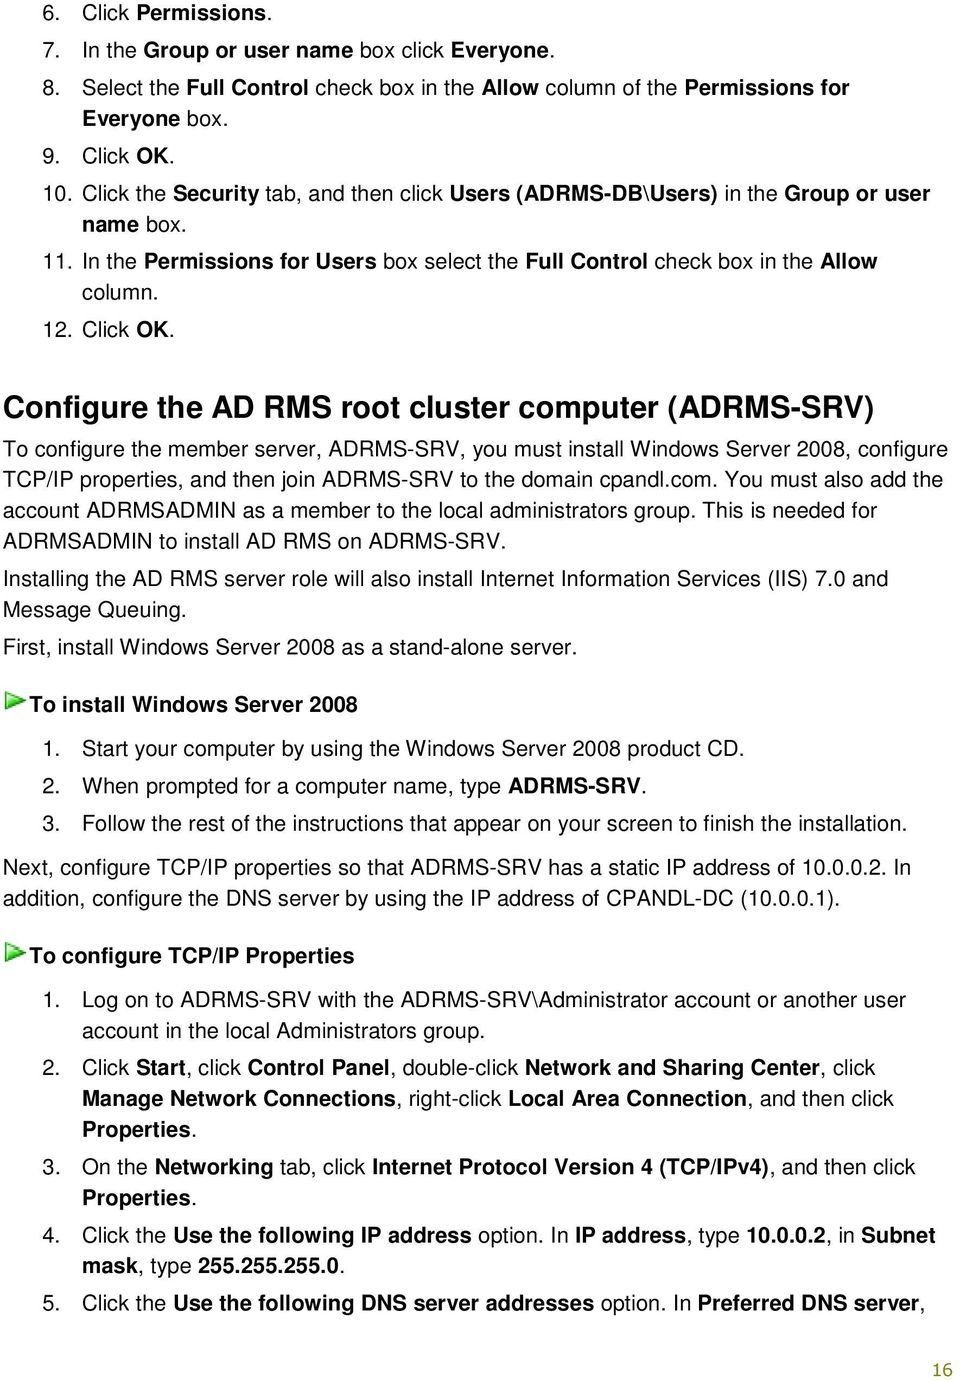 Configure the AD RMS root cluster computer (ADRMS-SRV) To configure the member server, ADRMS-SRV, you must install Windows Server 2008, configure TCP/IP properties, and then join ADRMS-SRV to the